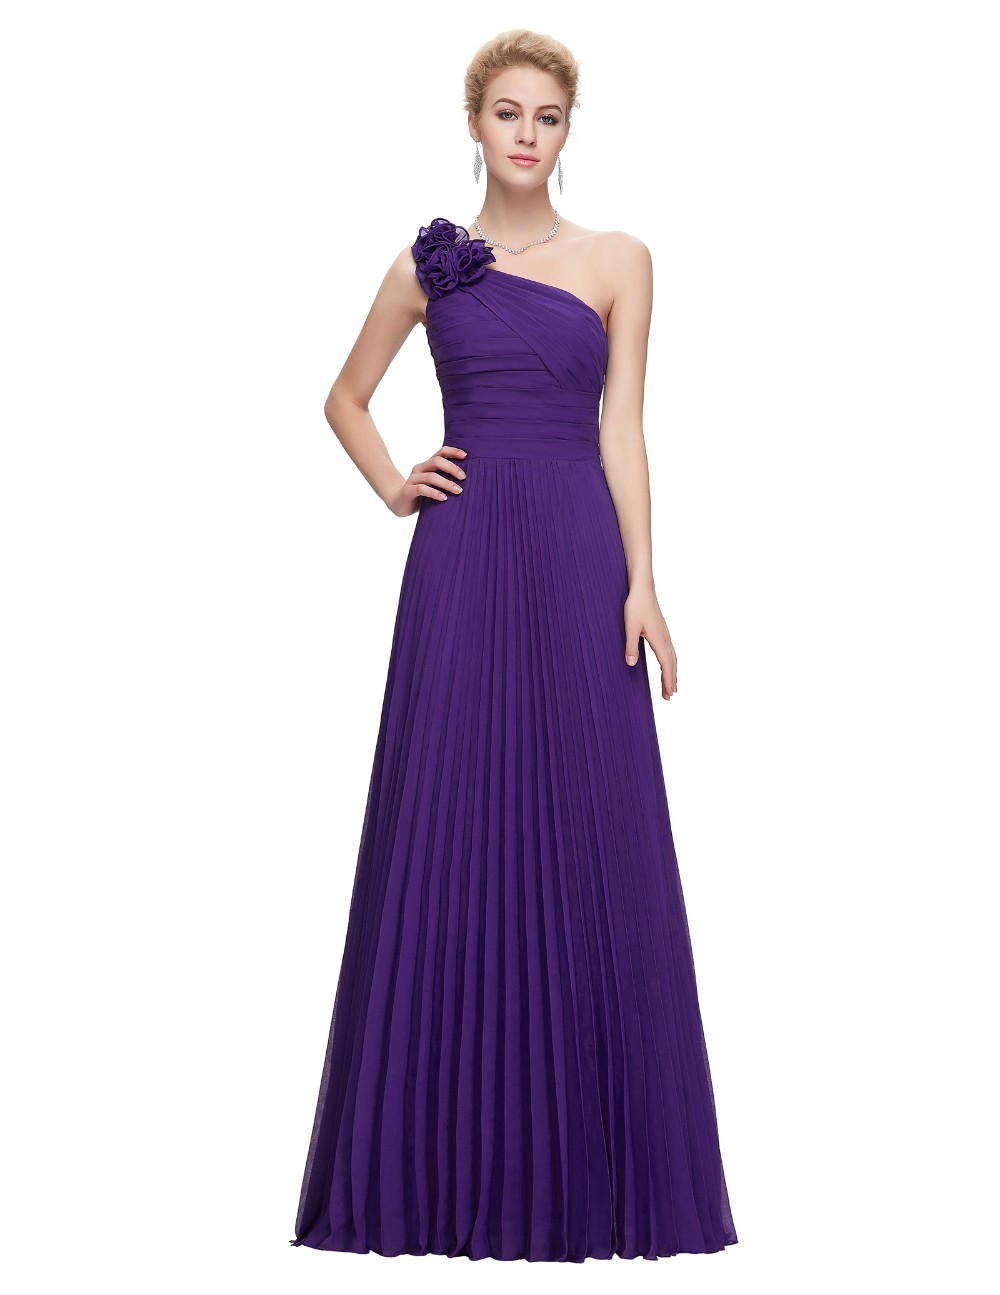 Grace Karin Chiffon Long Evening Dress One Shoulder Pleated Red Green Purple Royal Blue Formal Evening Dress Party Gowns 2018 17